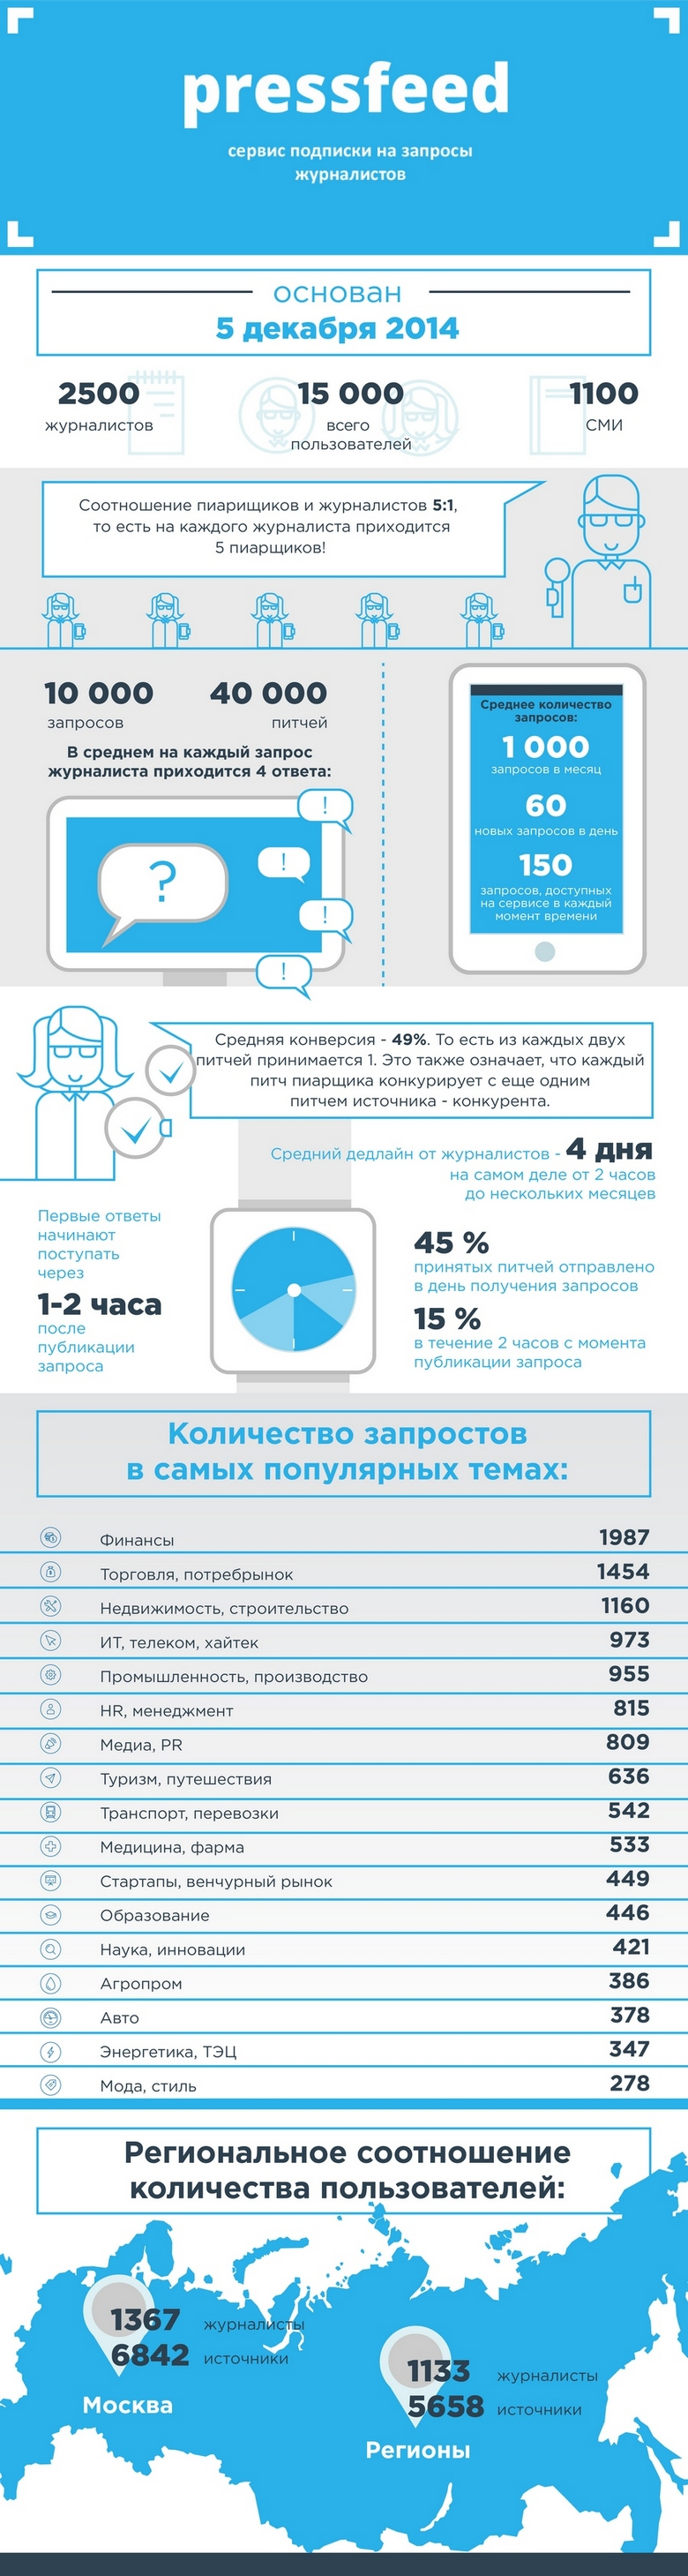 infographic_pressfeed_3-780